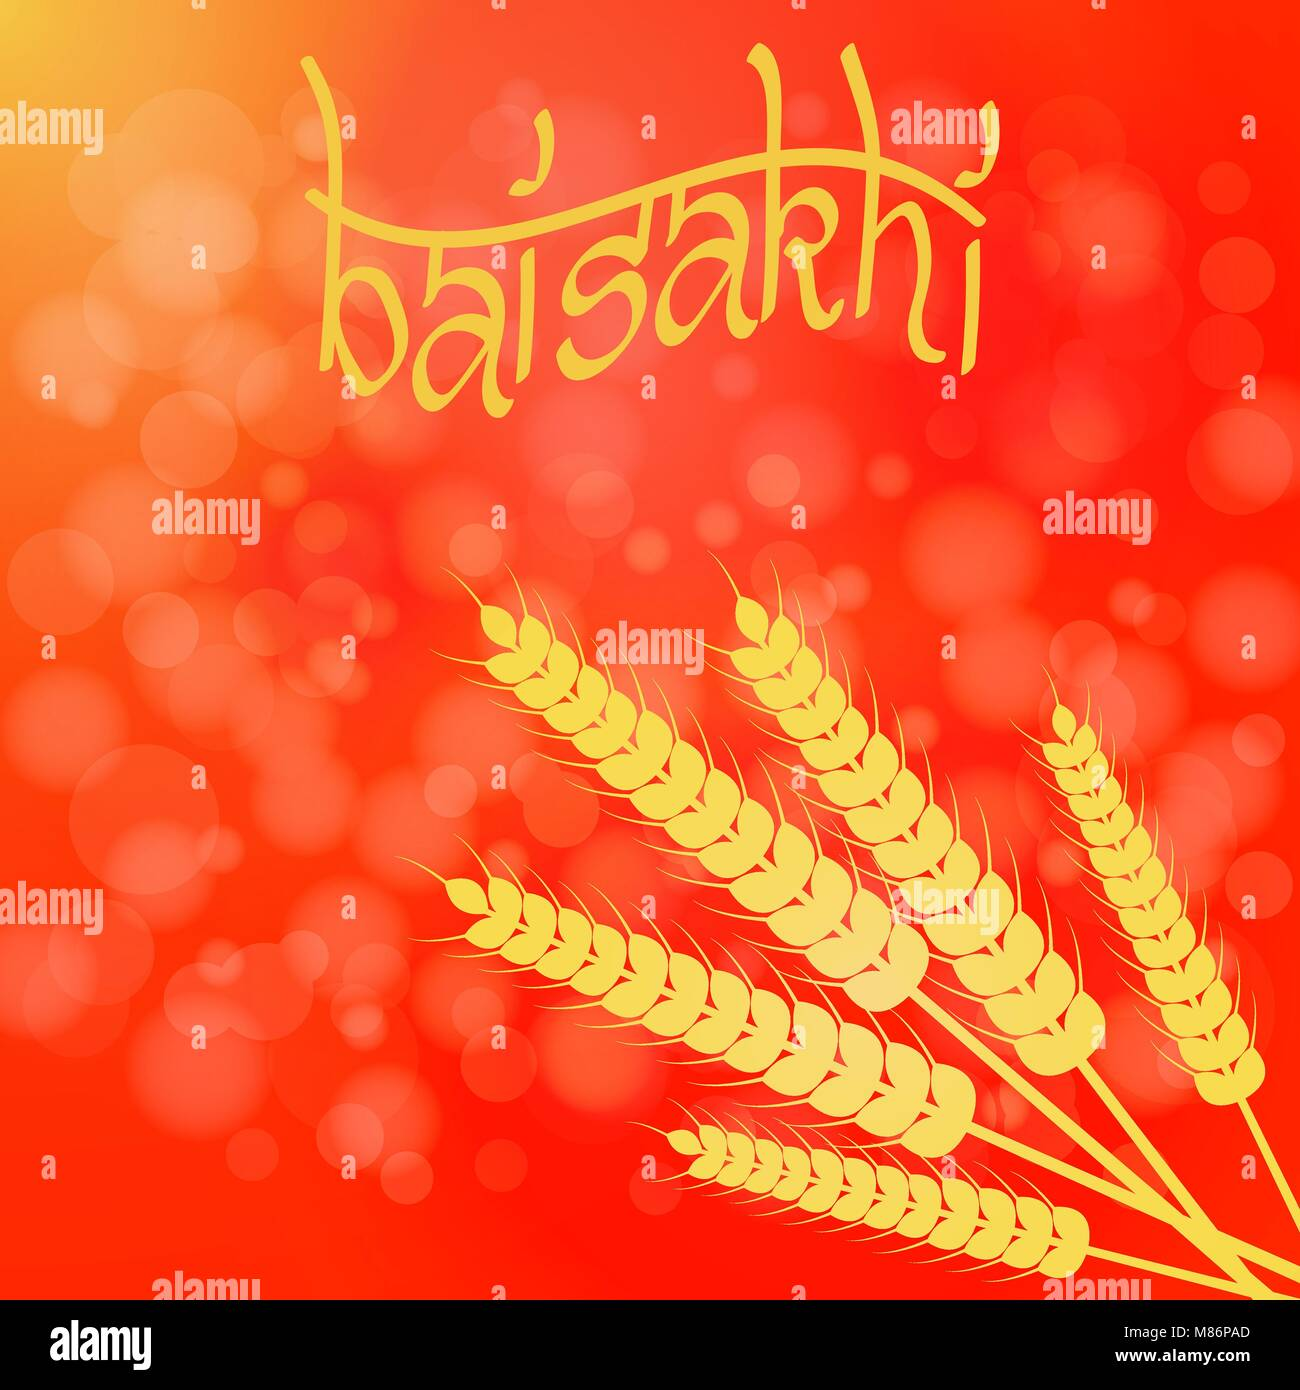 Holiday Baisakhi. New Year of the Sikhs. Bunch of Wheat. On a red-orange background - Stock Vector